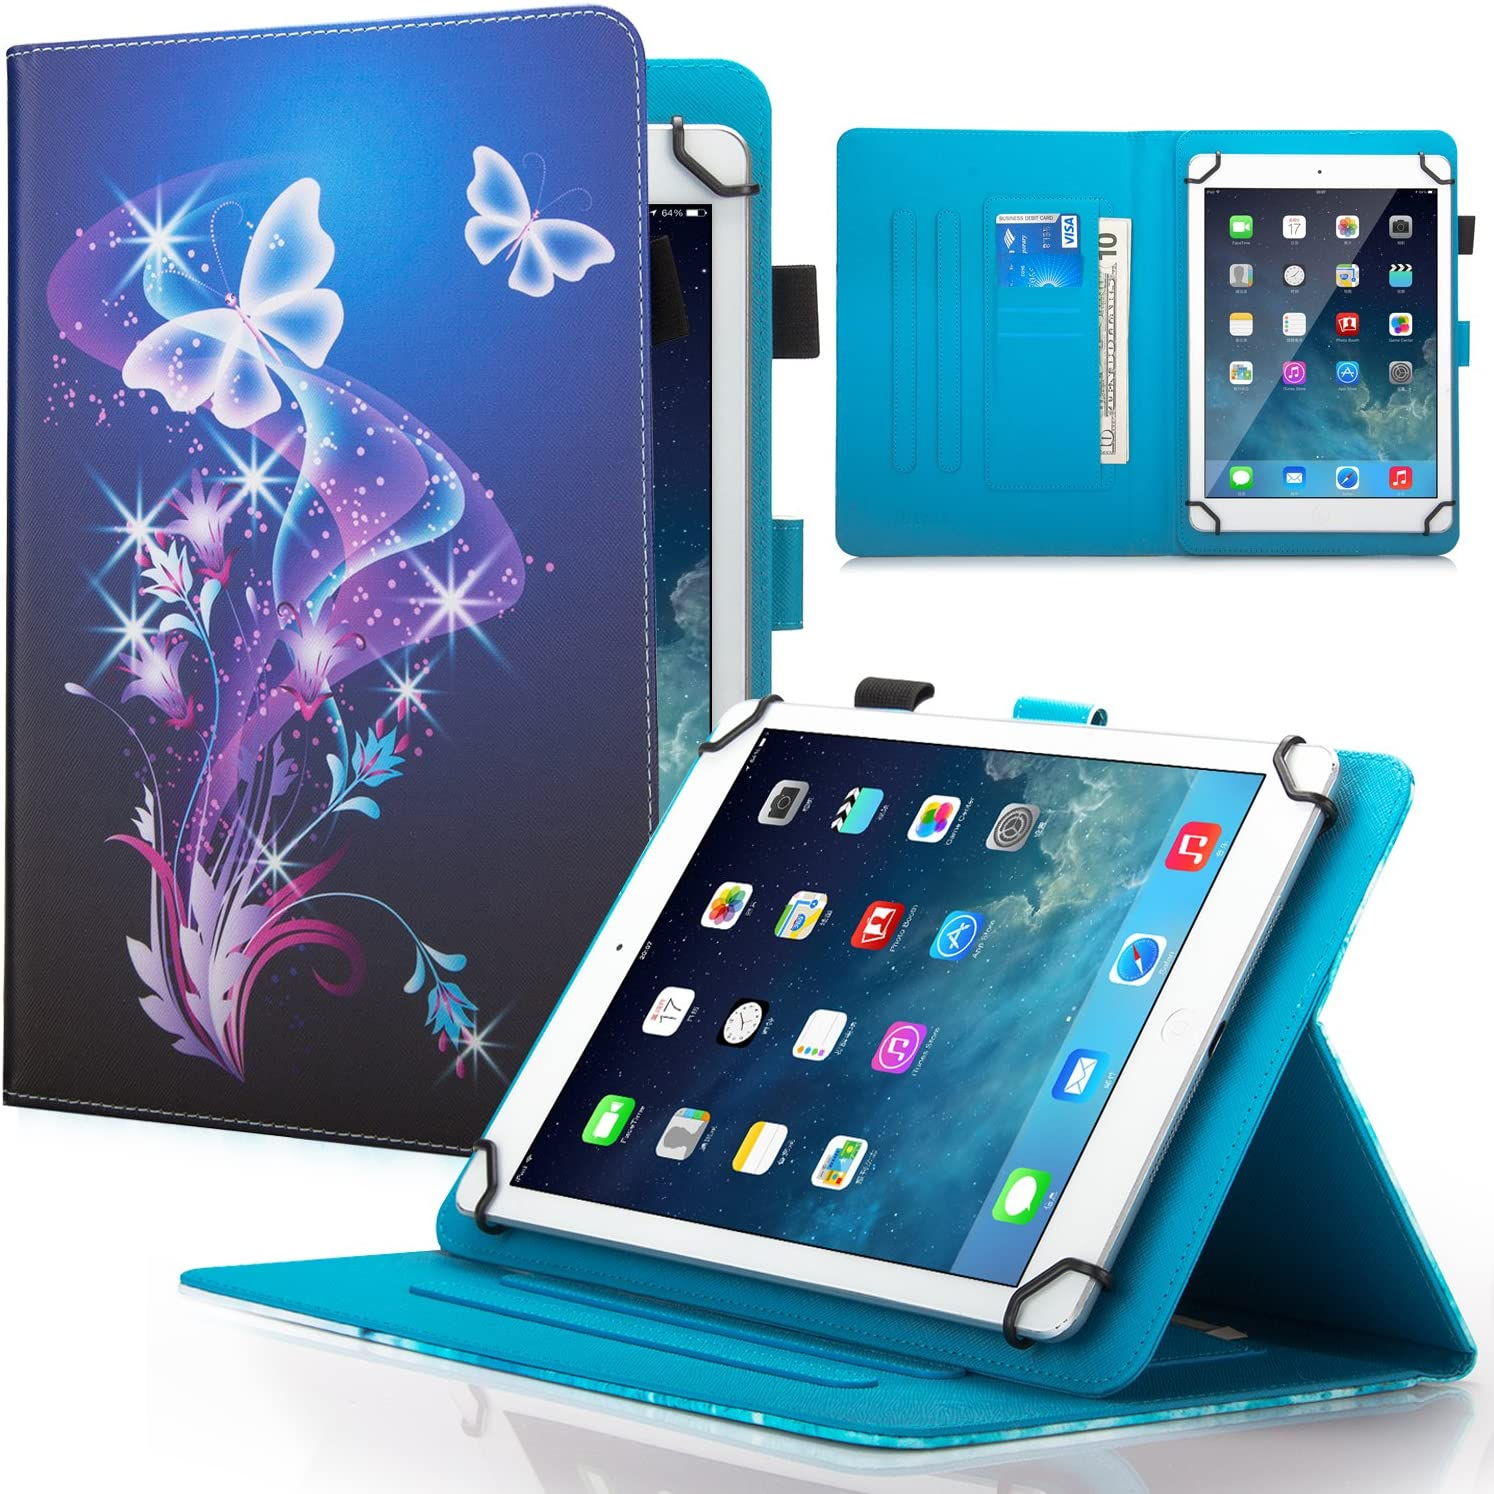 "Dteck 7.5-8.5 Inch Universal Case with [Stylus Pen], Stand Wallet Fold Cover for iPad Mini/Galaxy Tab/HD 8"" /Huawei/Lenovo/LG G Pad/Nook/Onn 7.8, 8, 8.3, 8.4 8.5 Inch Tablet, Purple Butterfly"